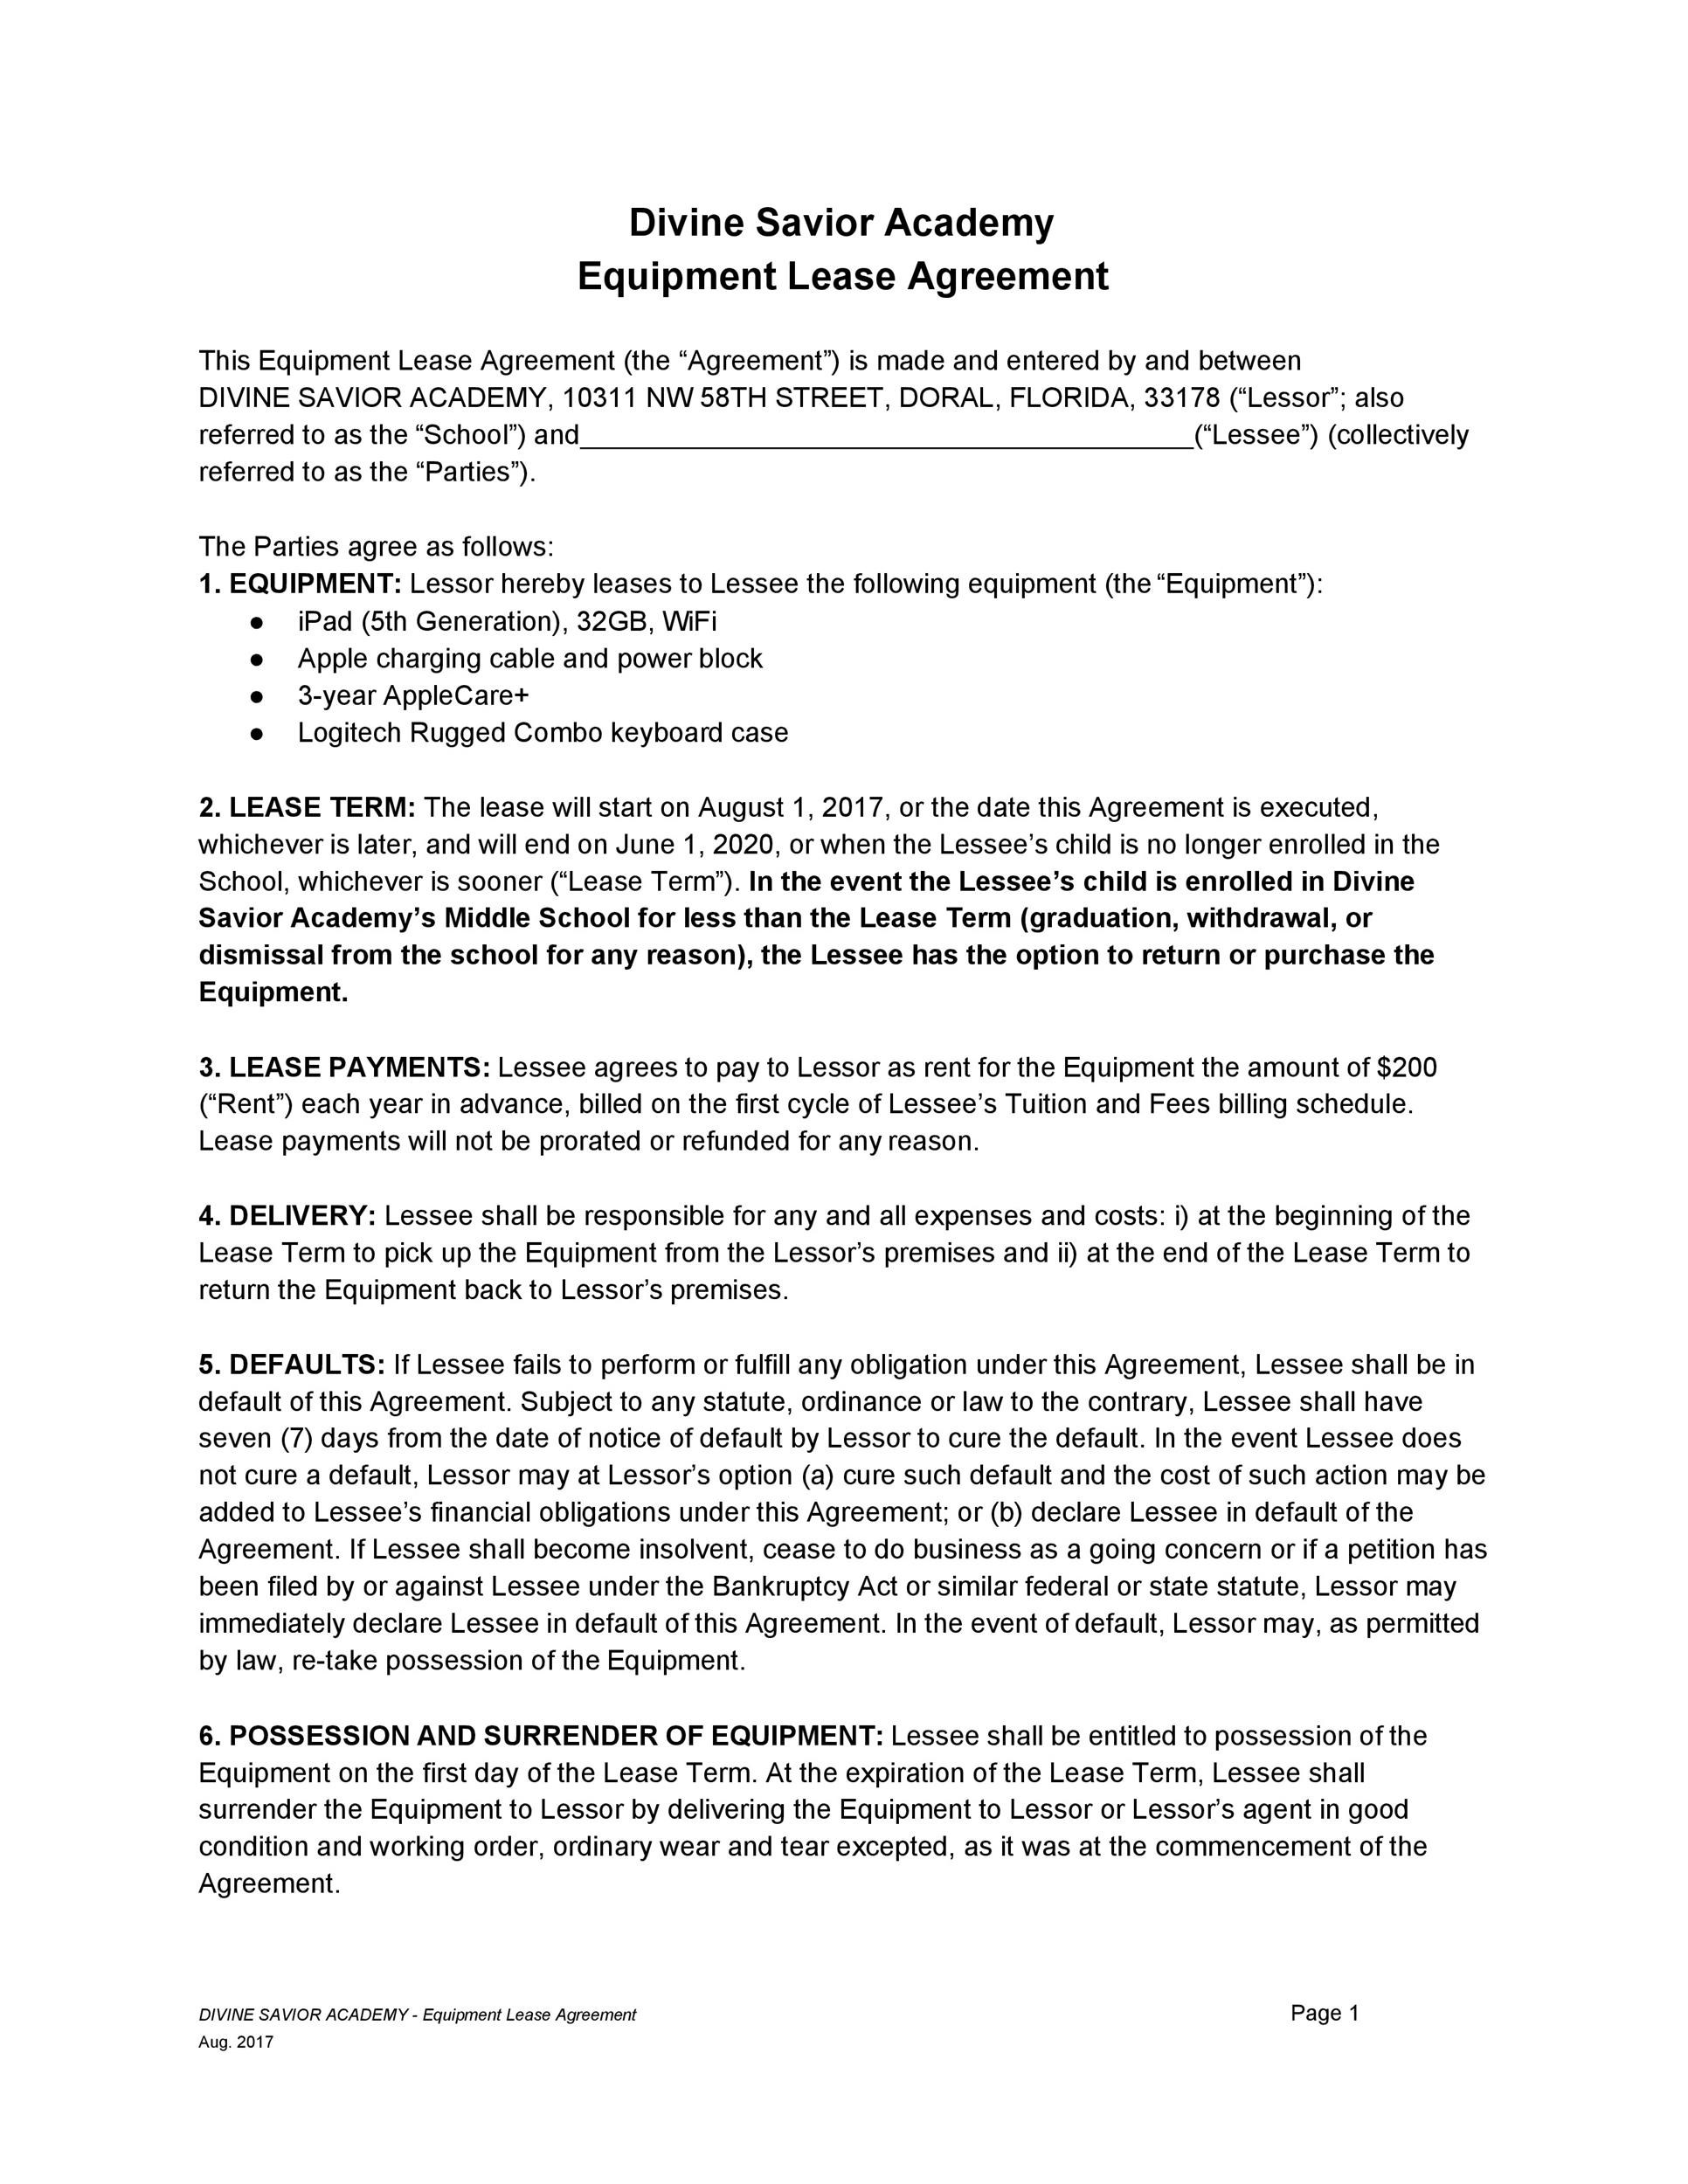 Free equipment lease agreement 07